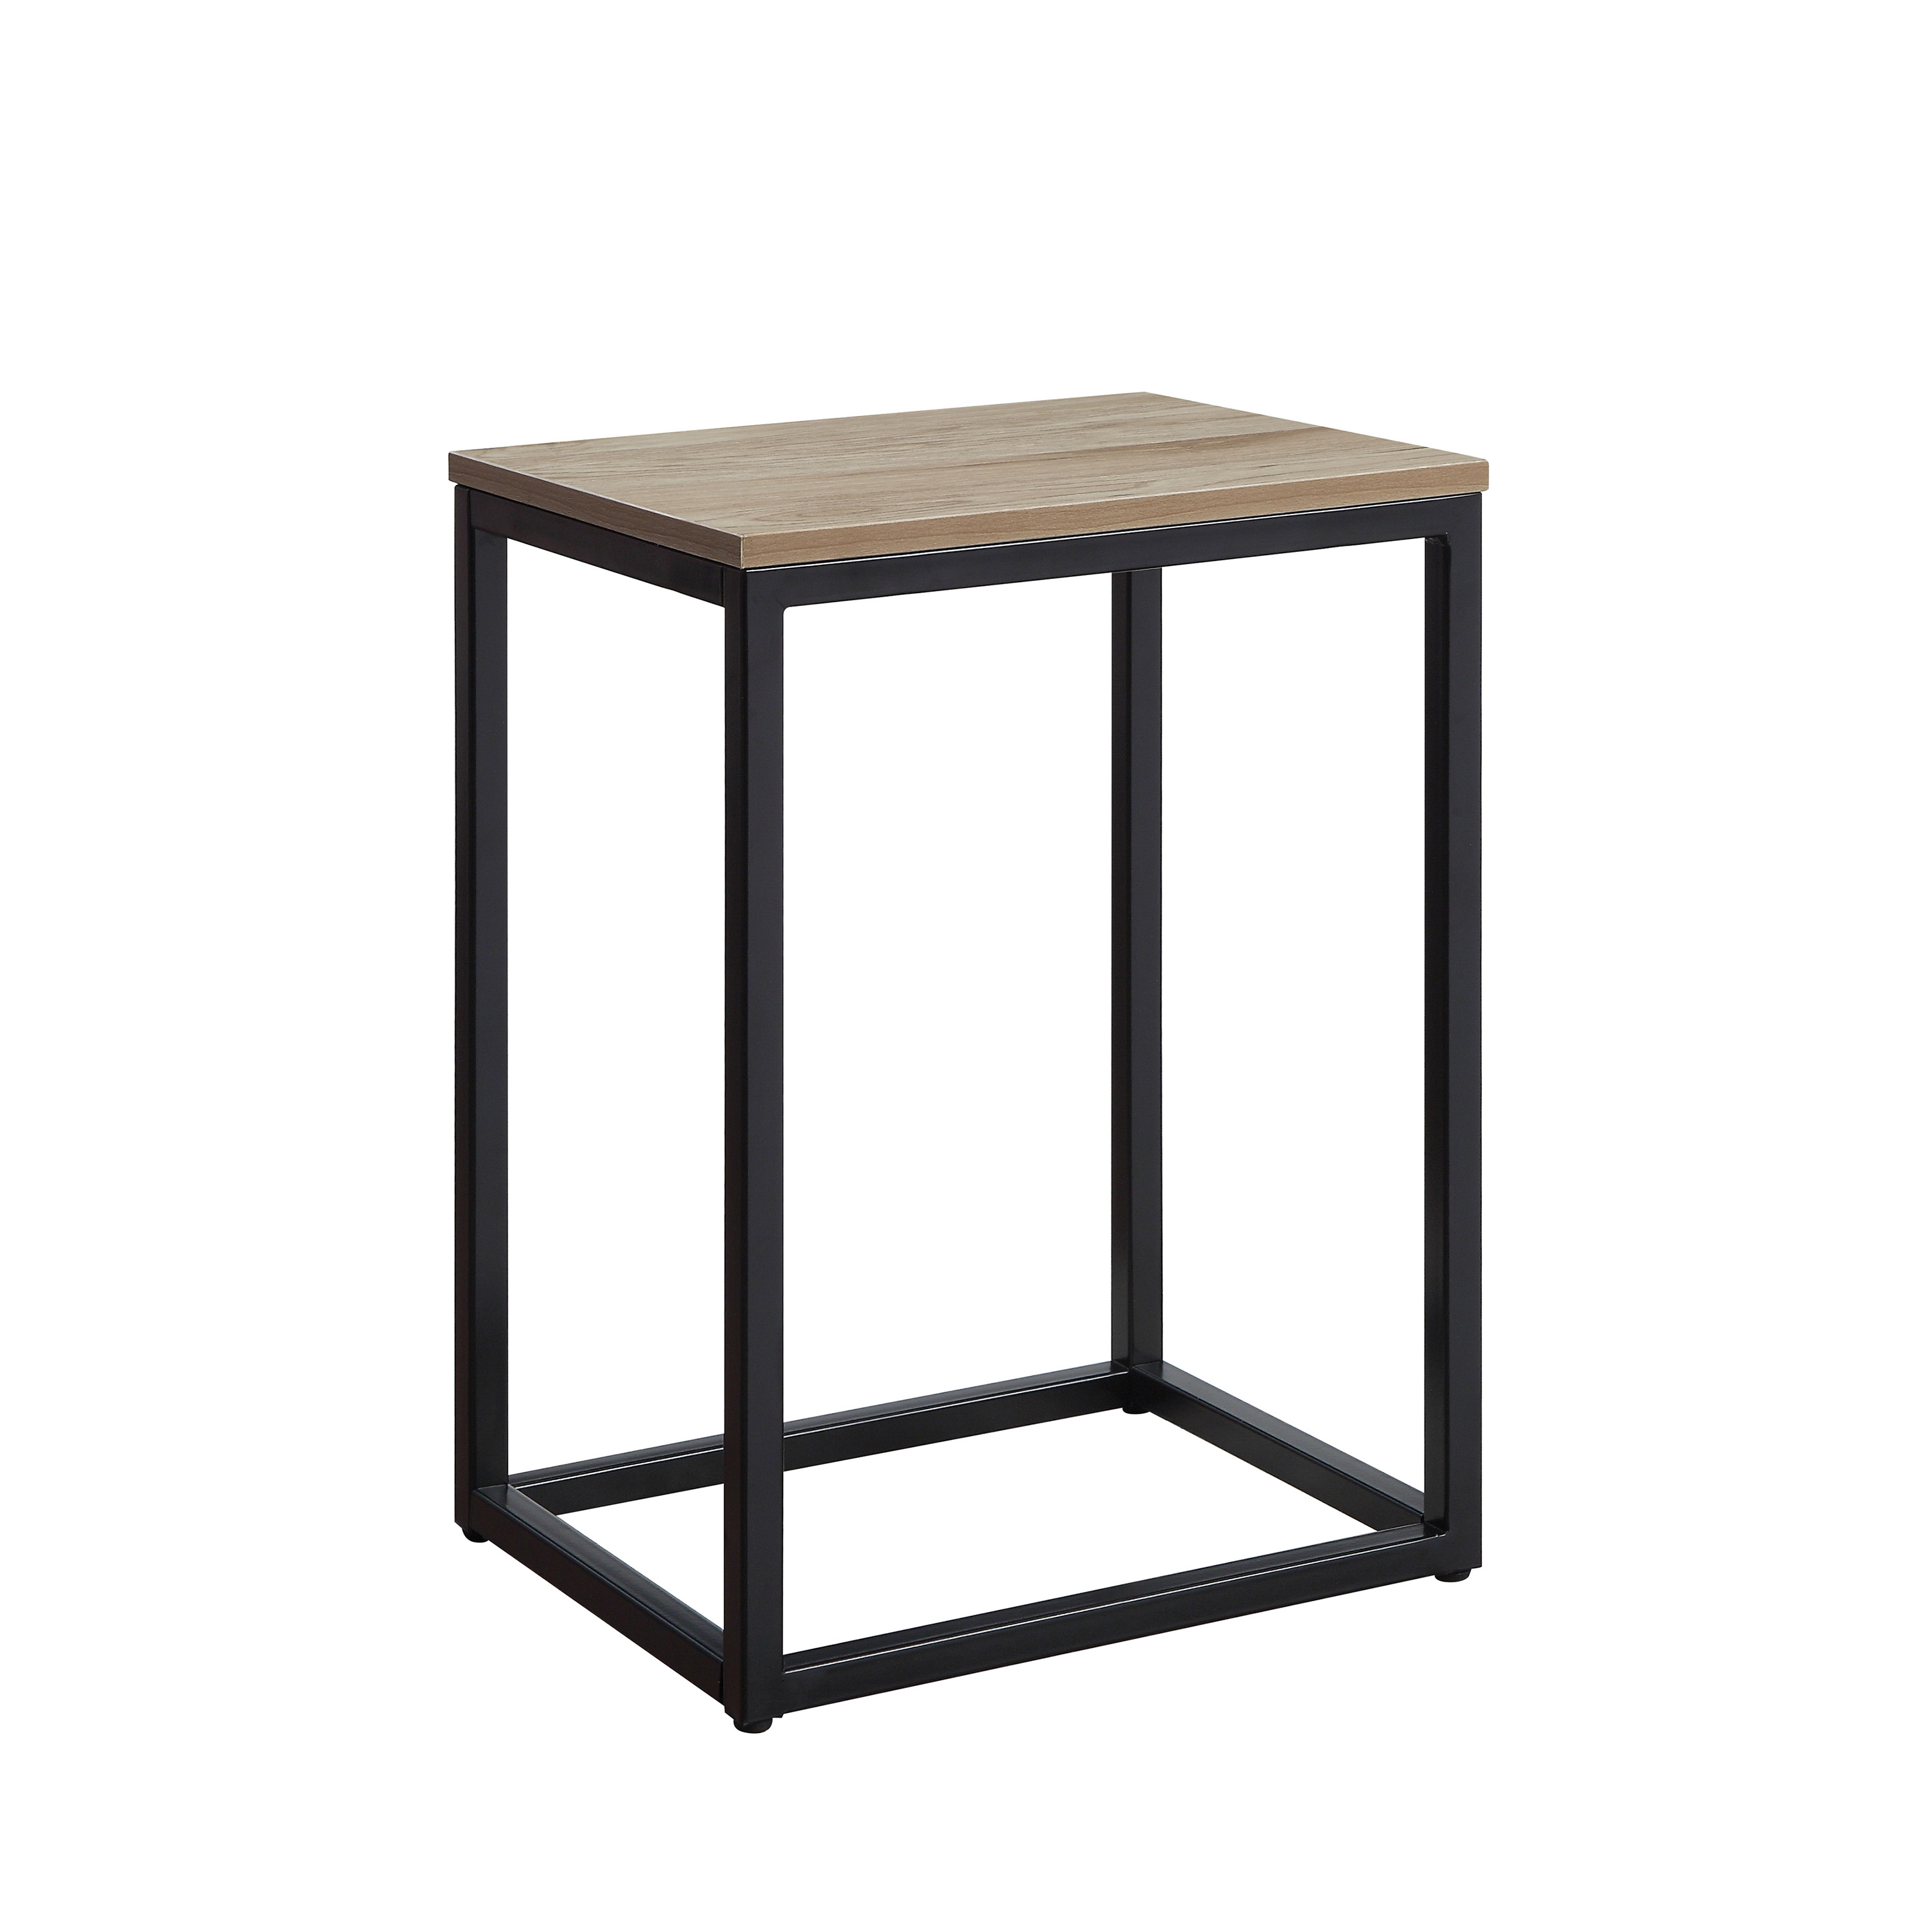 mainstays wicker side table brown inventory checker better homes and gardens mercer accent vintage oak end with space saving design durable metal frame multiple finishes tro lamps